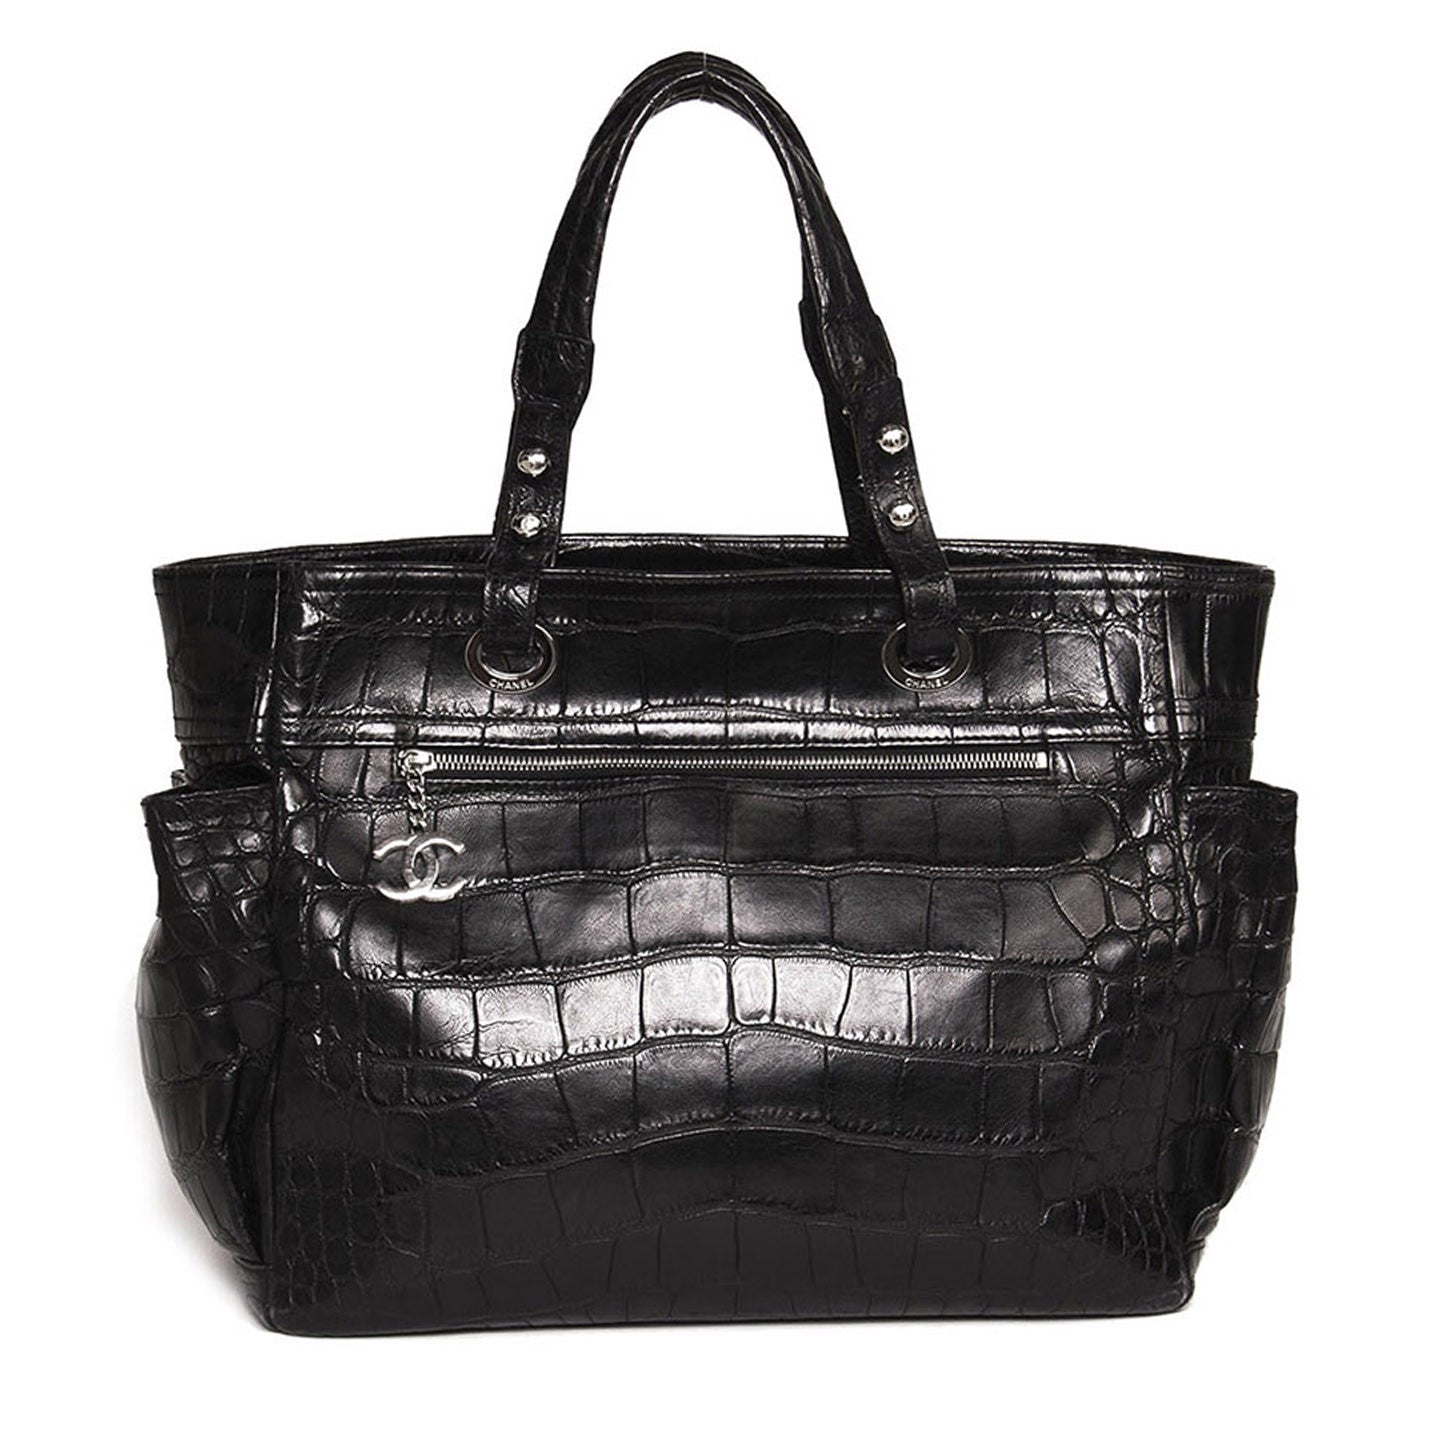 Find this chic vintage Chanel black Crocodile shoulder bag at BunnyJack, where up to 50% of each sale price is donated to a deserving charity.